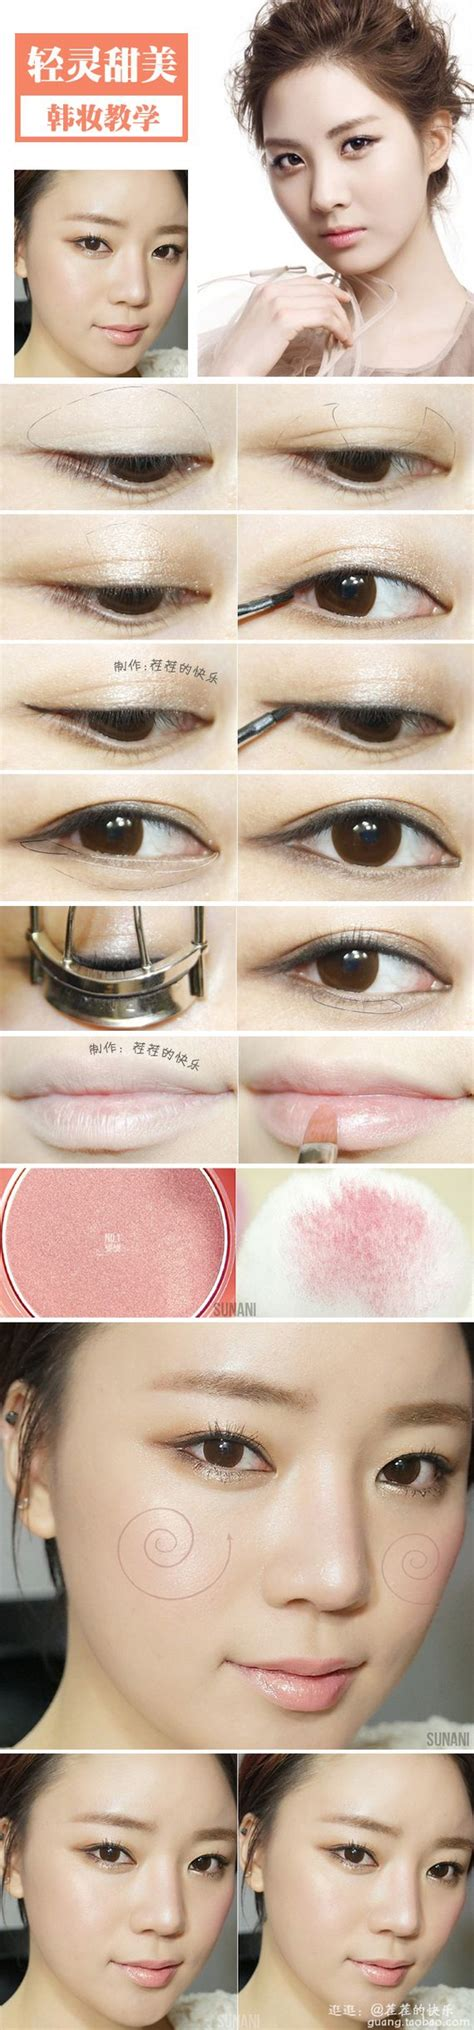 tutorial make up korea mp4 76 best kpop makeup images on pinterest asian makeup